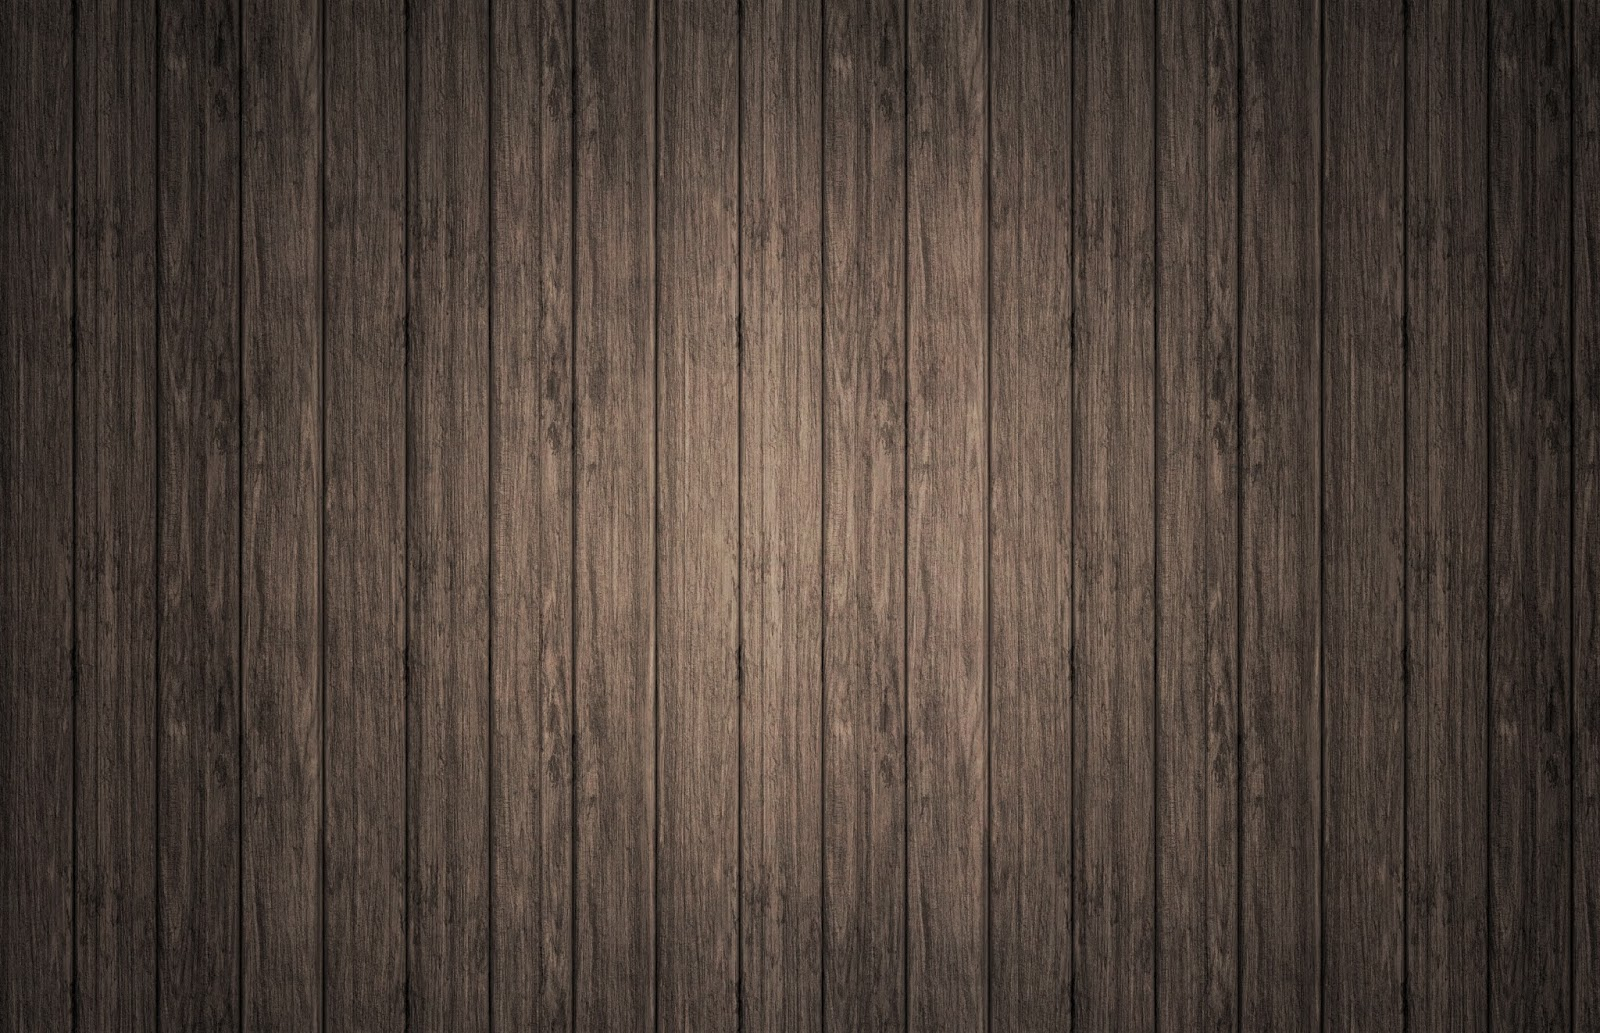 desktop pc wooden background texture pattern images for website hd 1600x1033